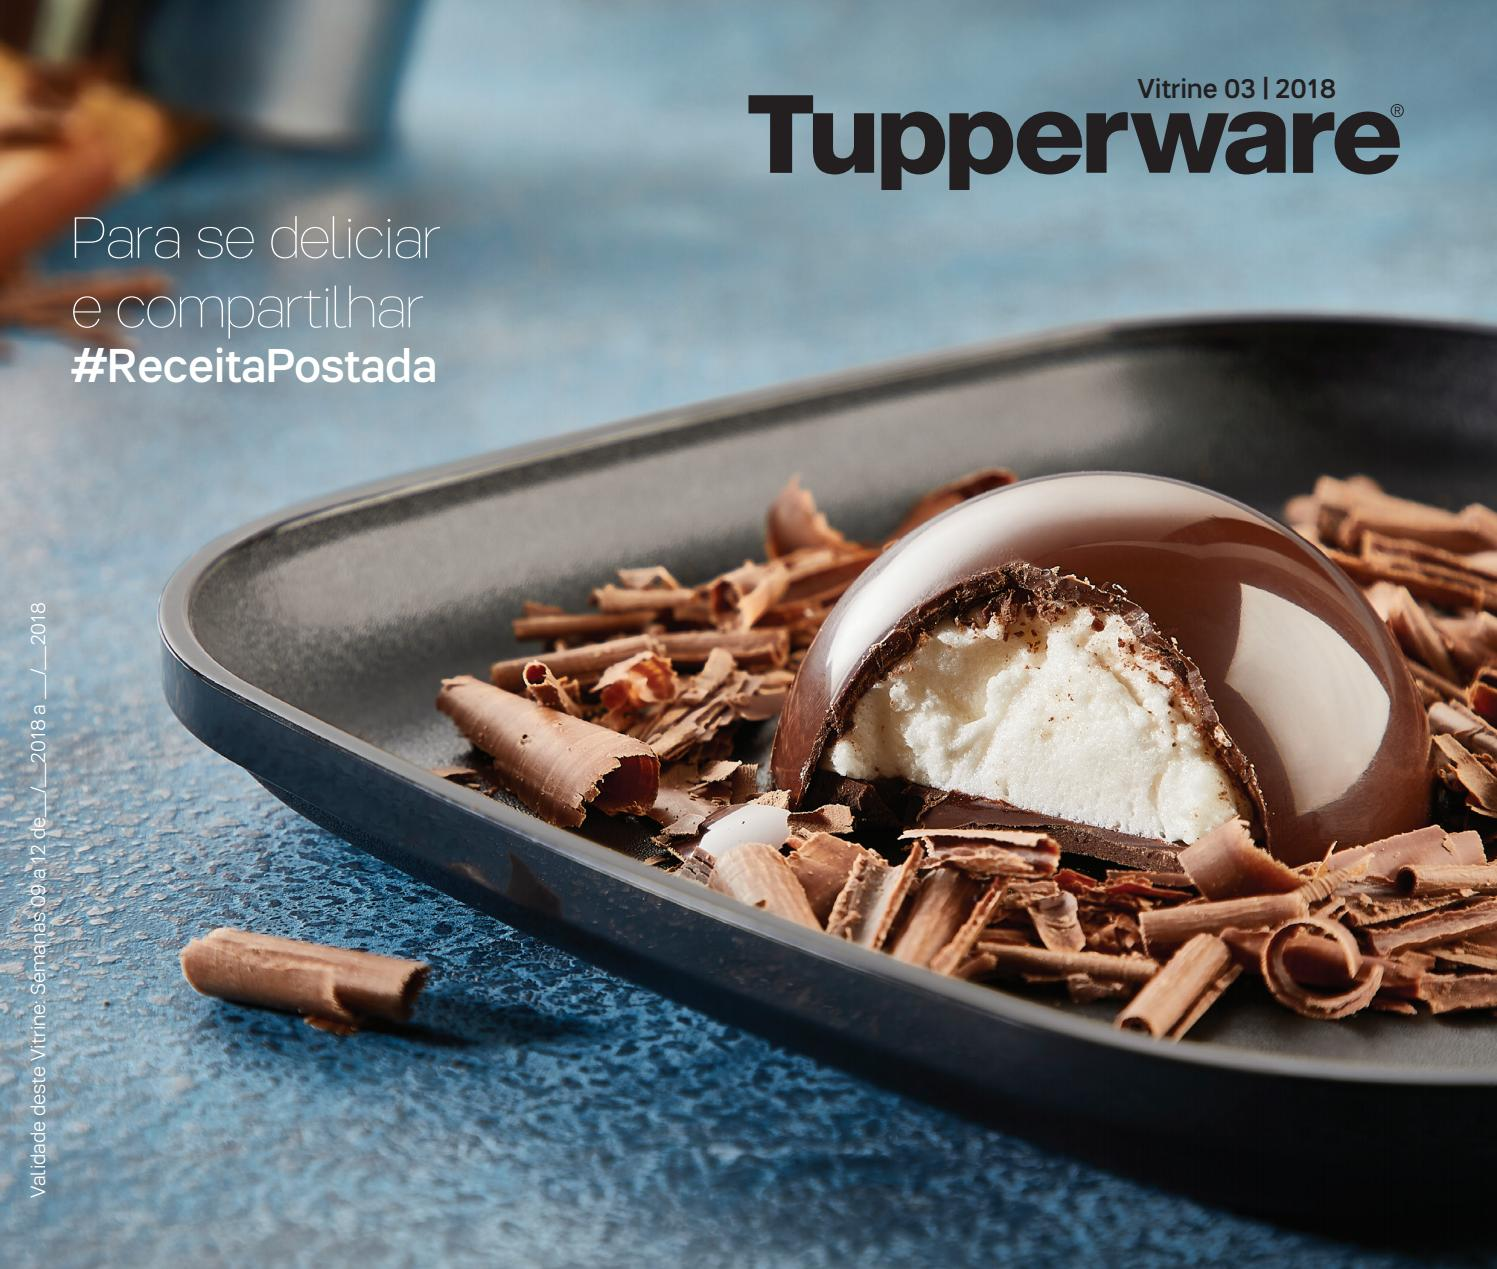 Tupperware additionally Tupperware Mini Catalogue 5 30 moreover Giang Vien Am Thuc Truong Dai Hoc Hoa Sen 14816 together with Logo Quiz Ultimate Industry Answers besides Tupperware La Revanche. on tupperware logo